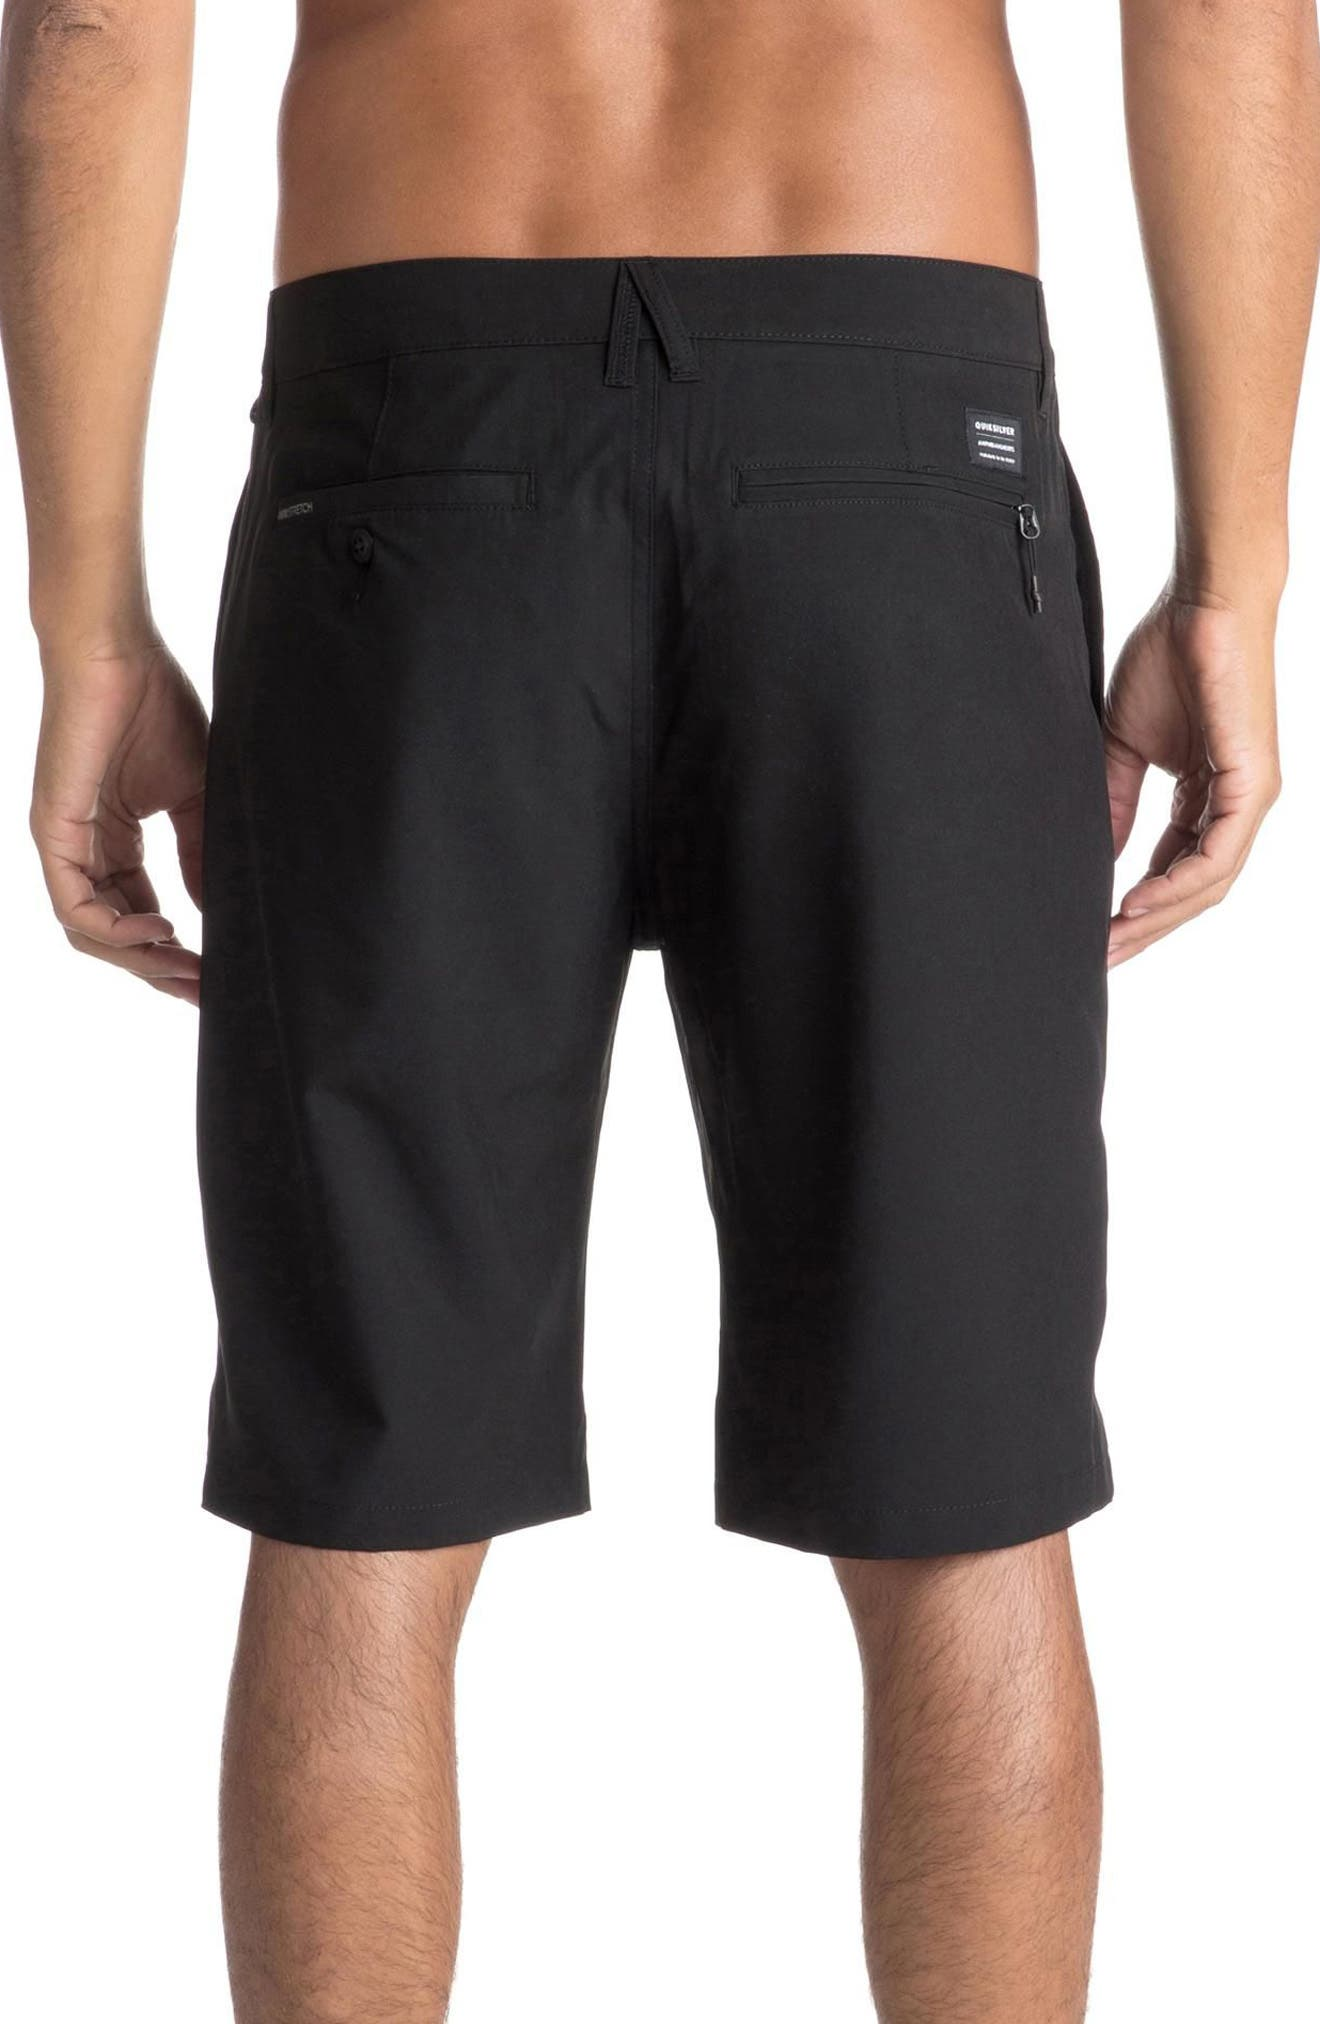 Union Amphibian Shorts,                             Alternate thumbnail 2, color,                             Black